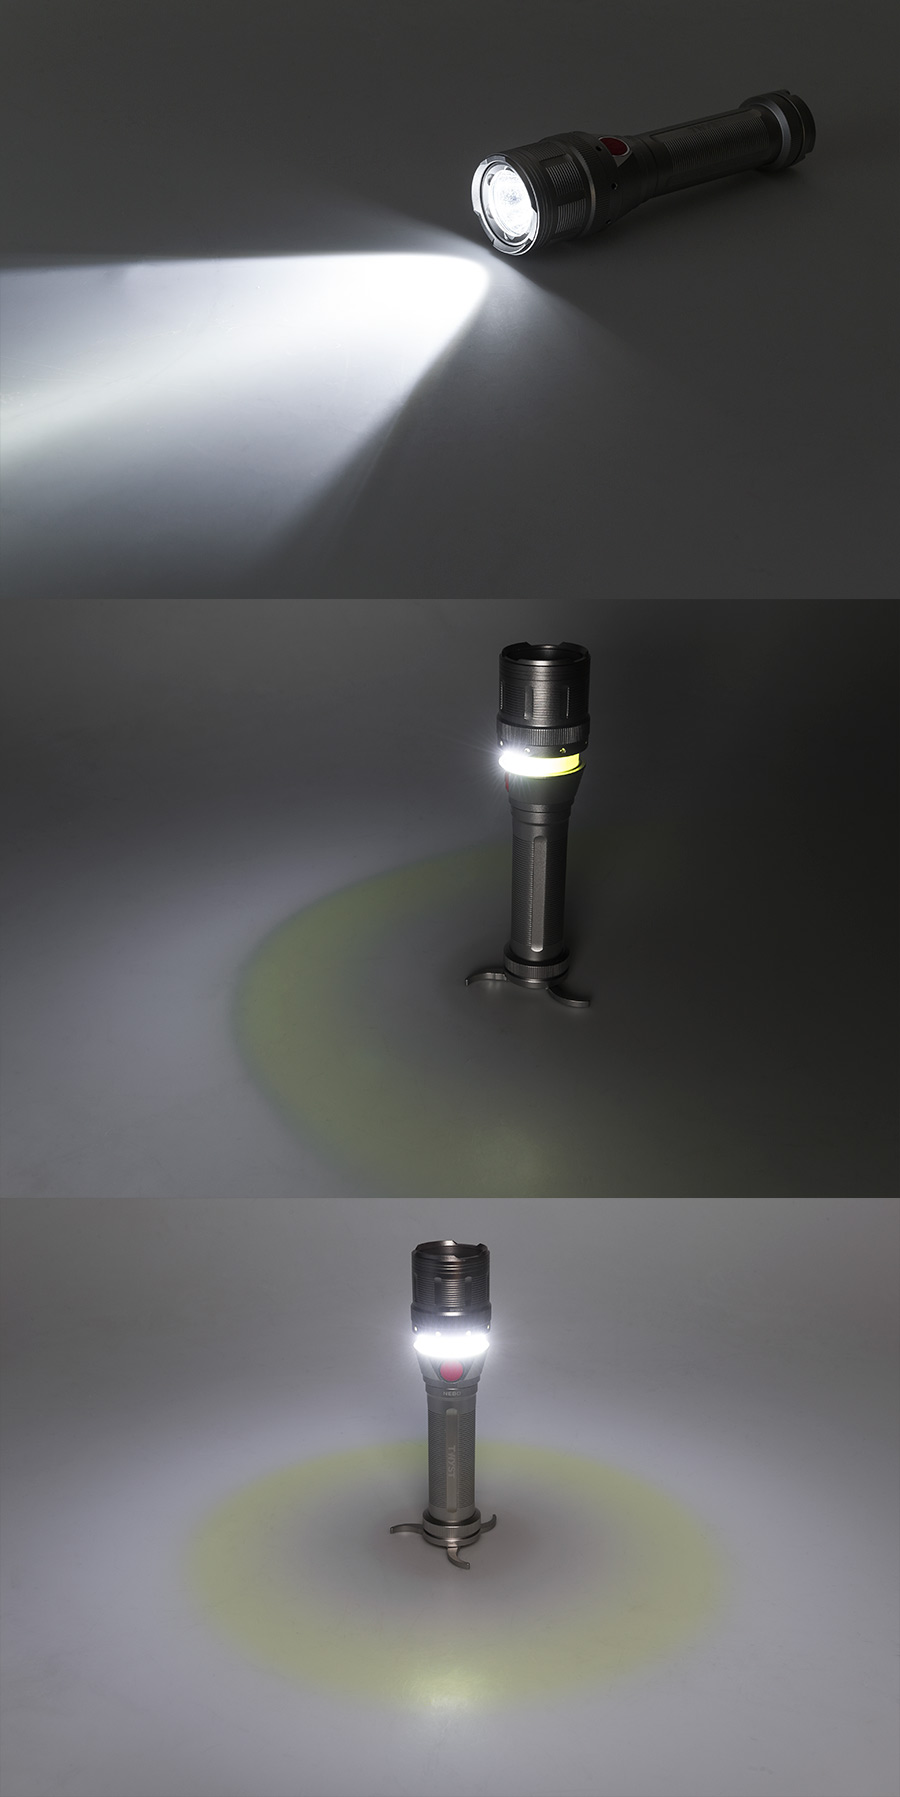 LED Flashlight   NEBO TWYST With Bulit In 360° COB Work Light: Shown On LED  Flashlight   NEBO TWYST With Bulit In 360° COB Work Light: Shown On In  Standard ...